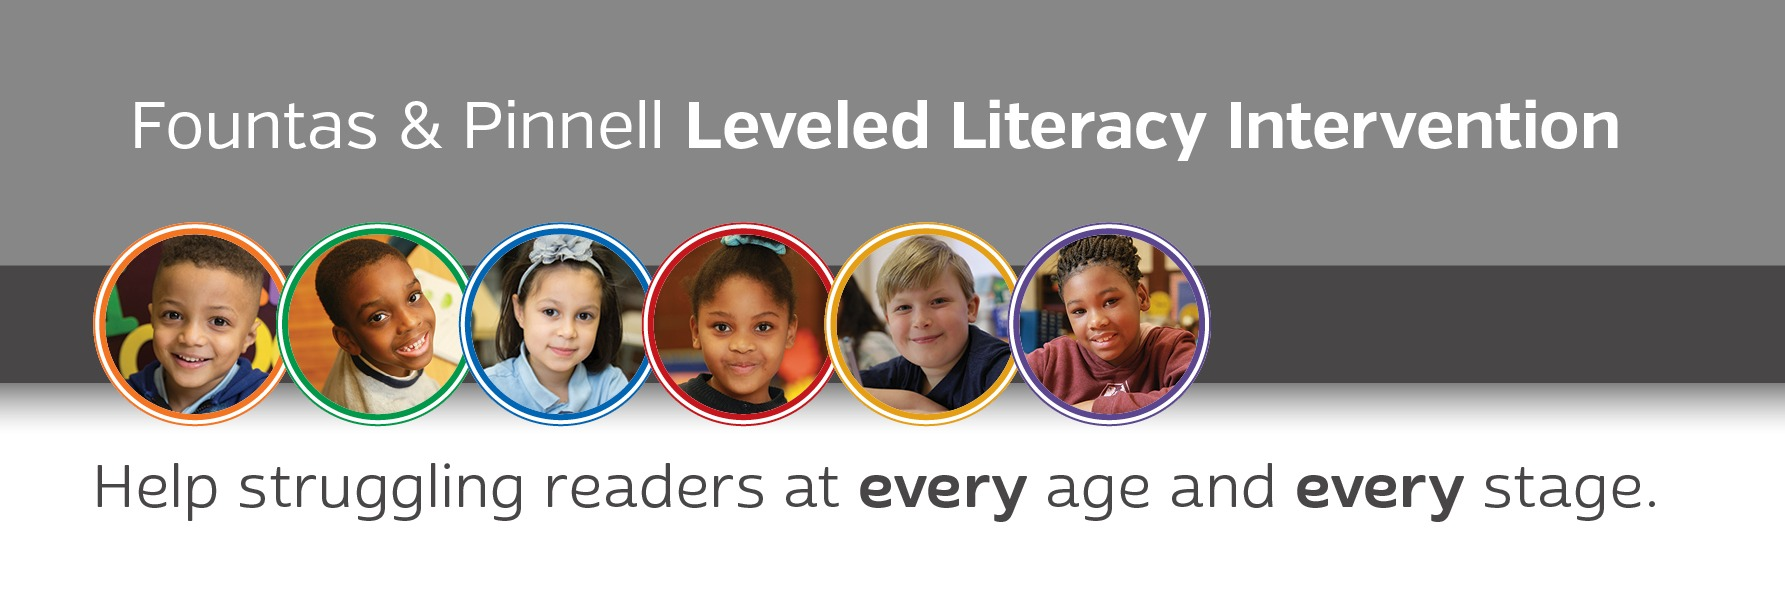 Fountas & PInnell LLI Help struggling readers at every age and every stage